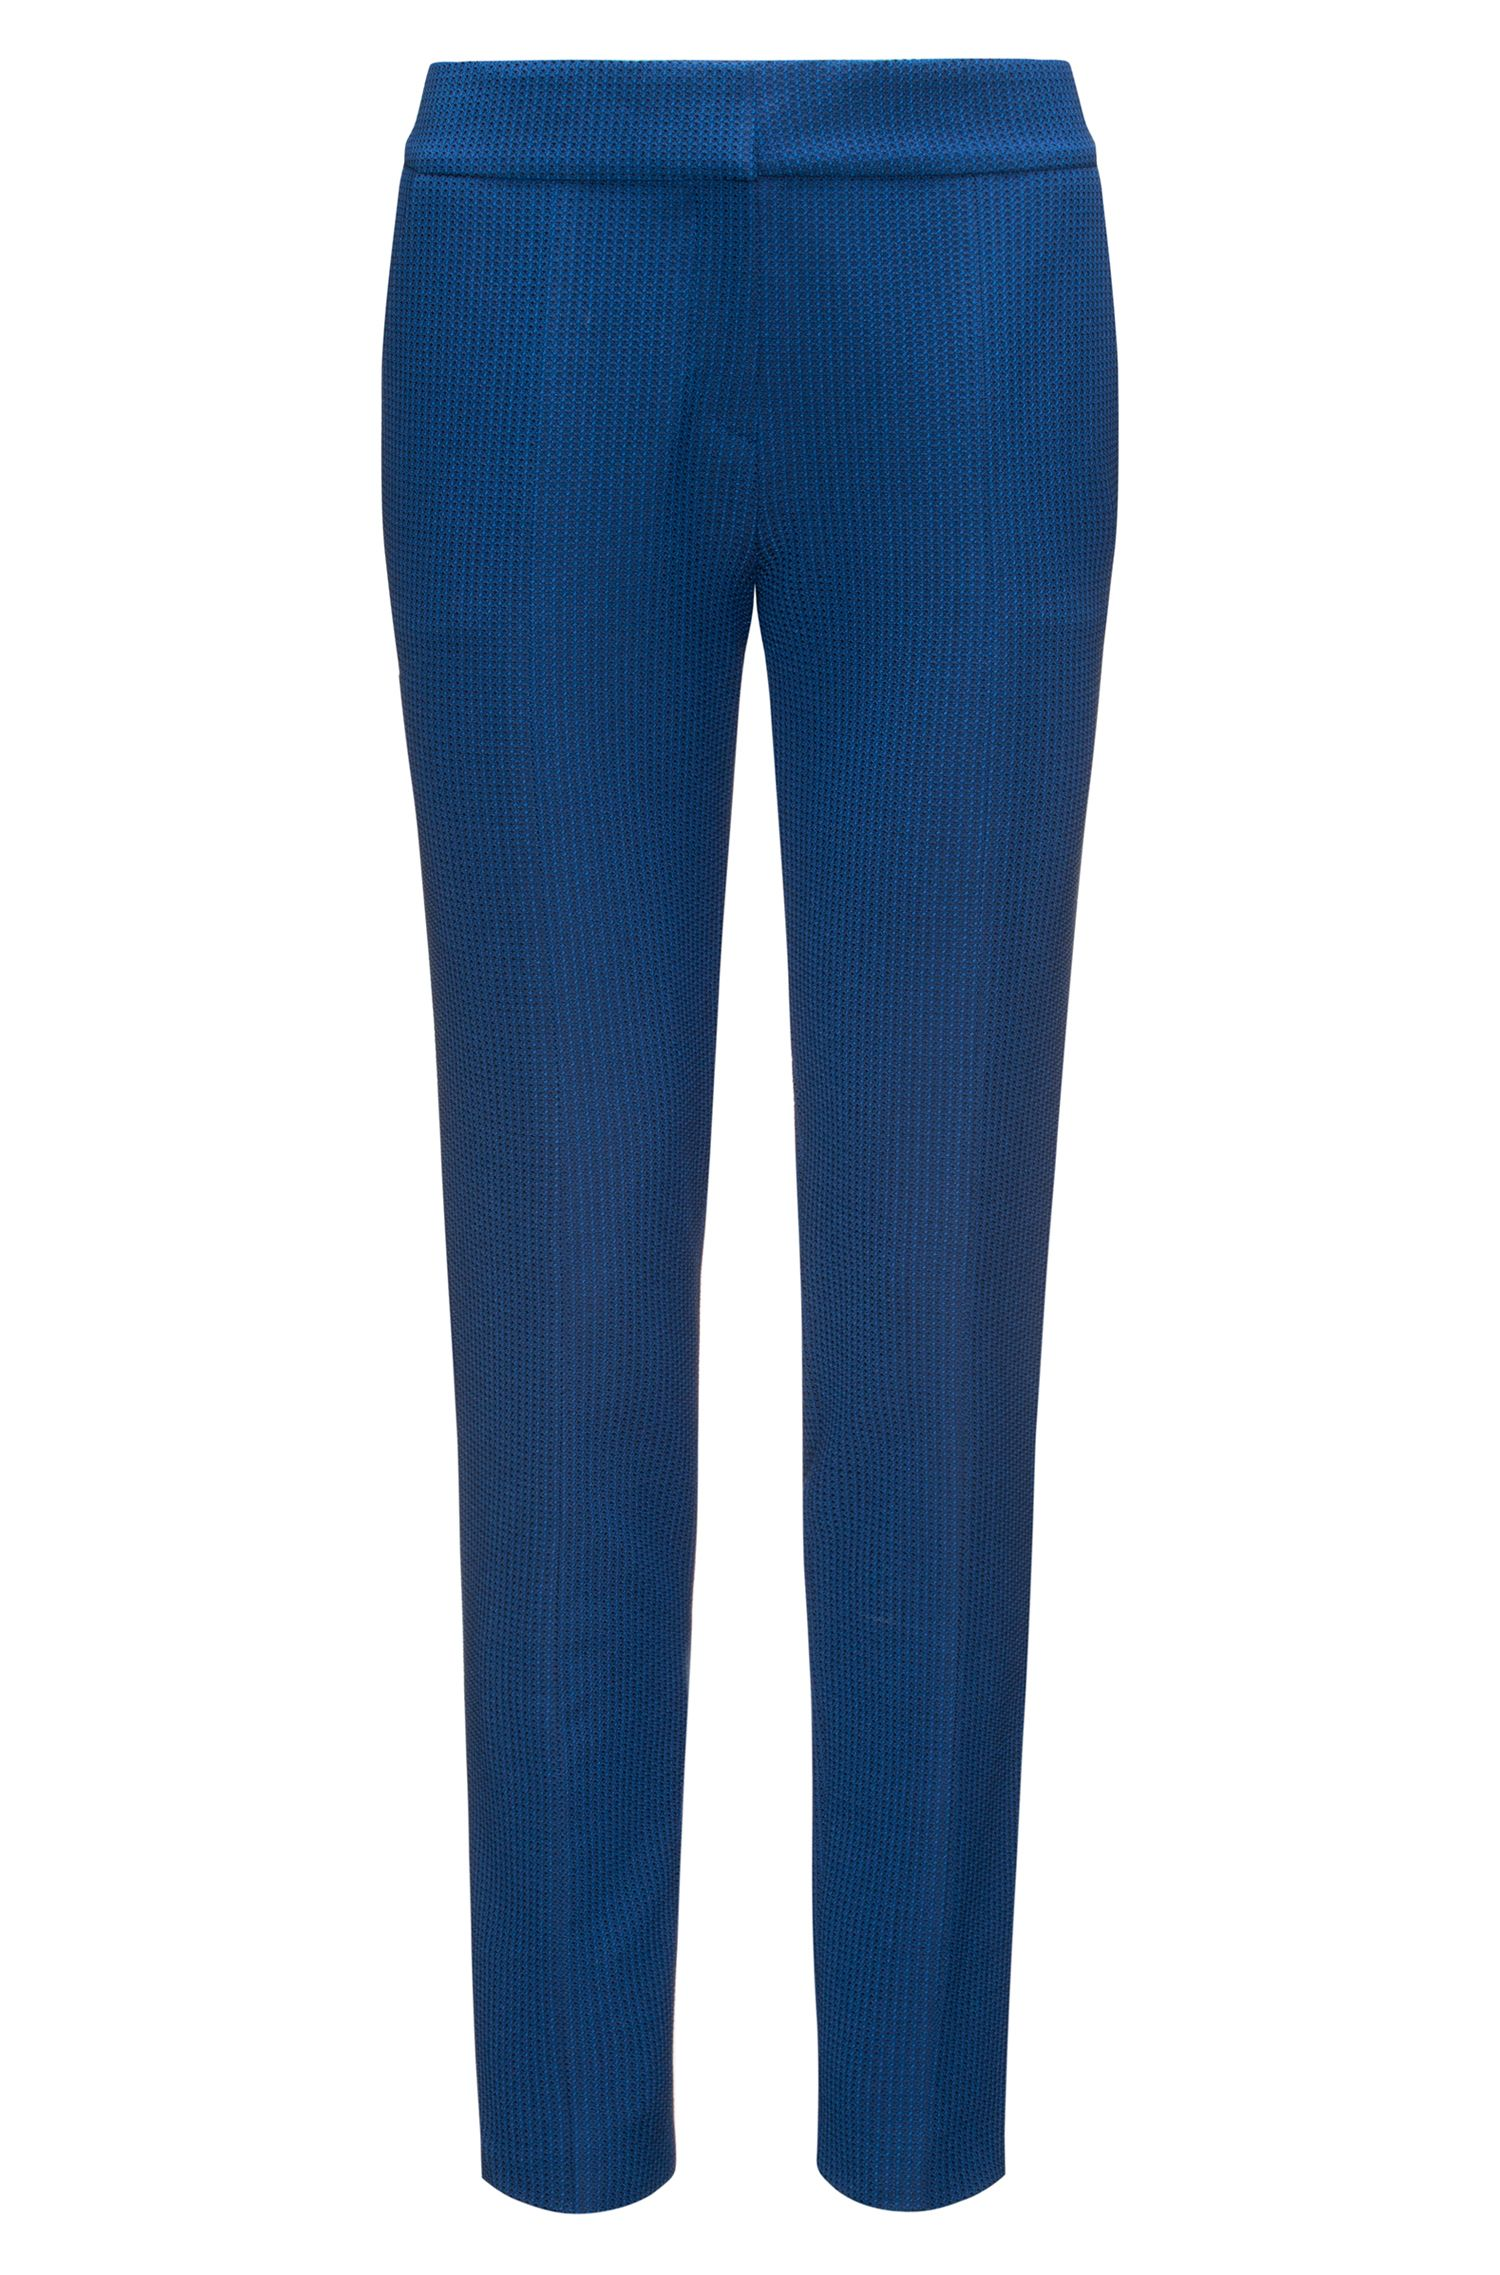 Patterned Cotton Blend Pant | Hevas, Dark Blue